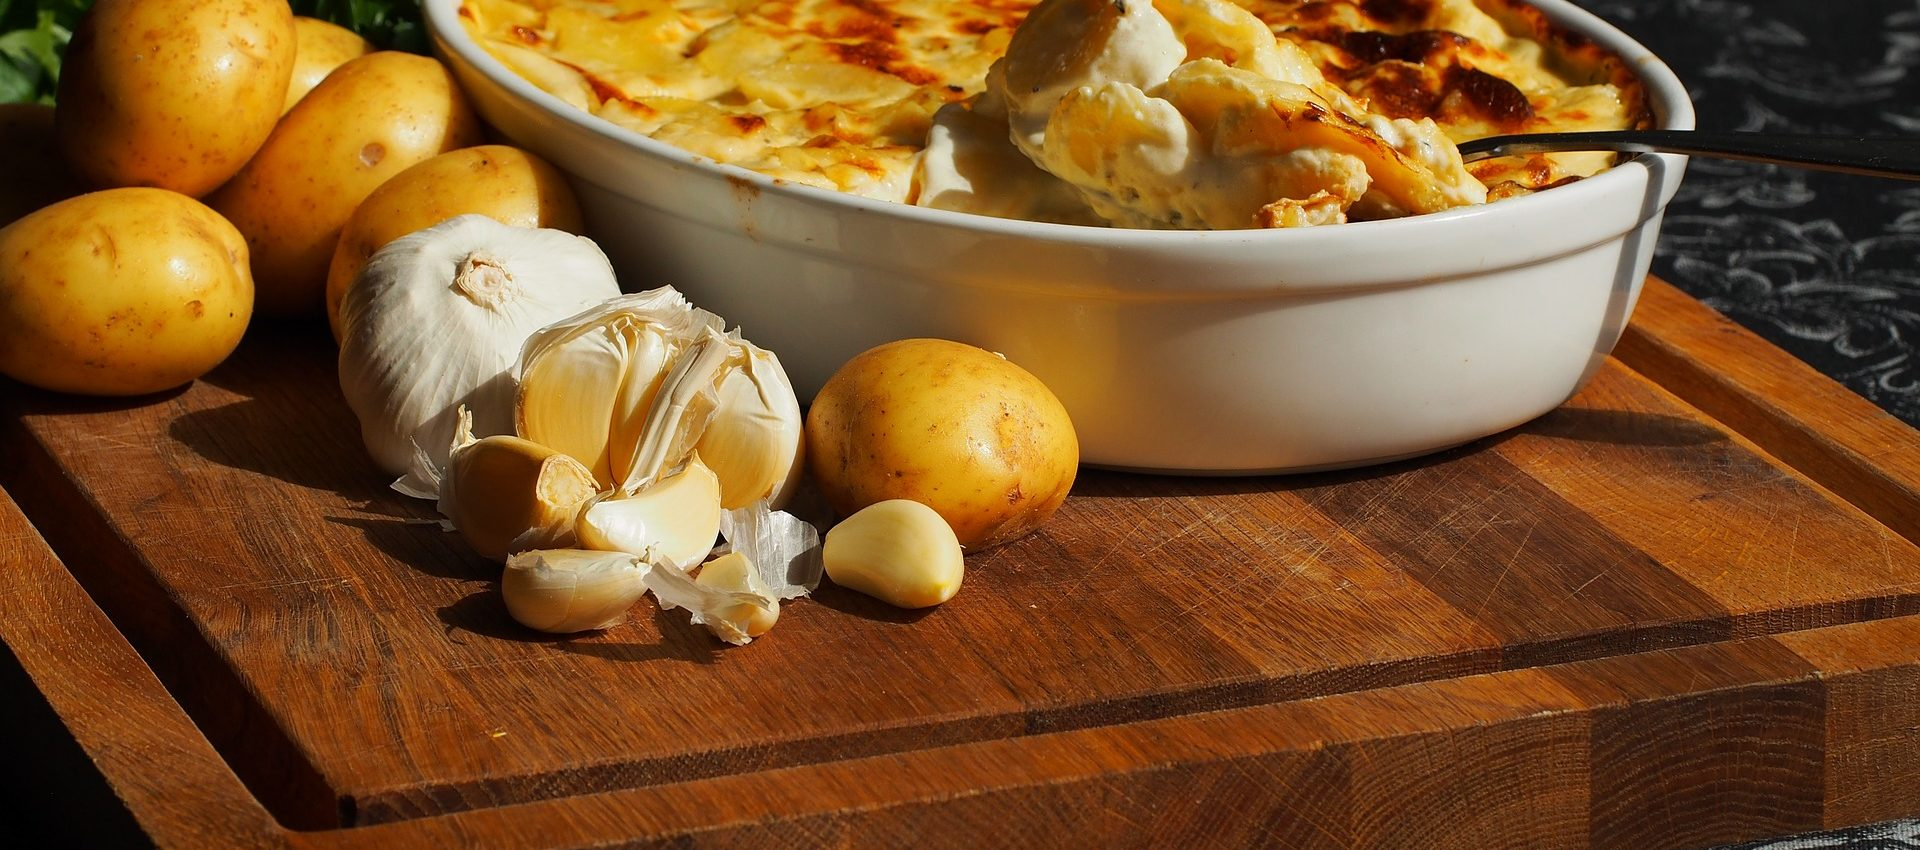 Gratin dauphinois simple au cookeo